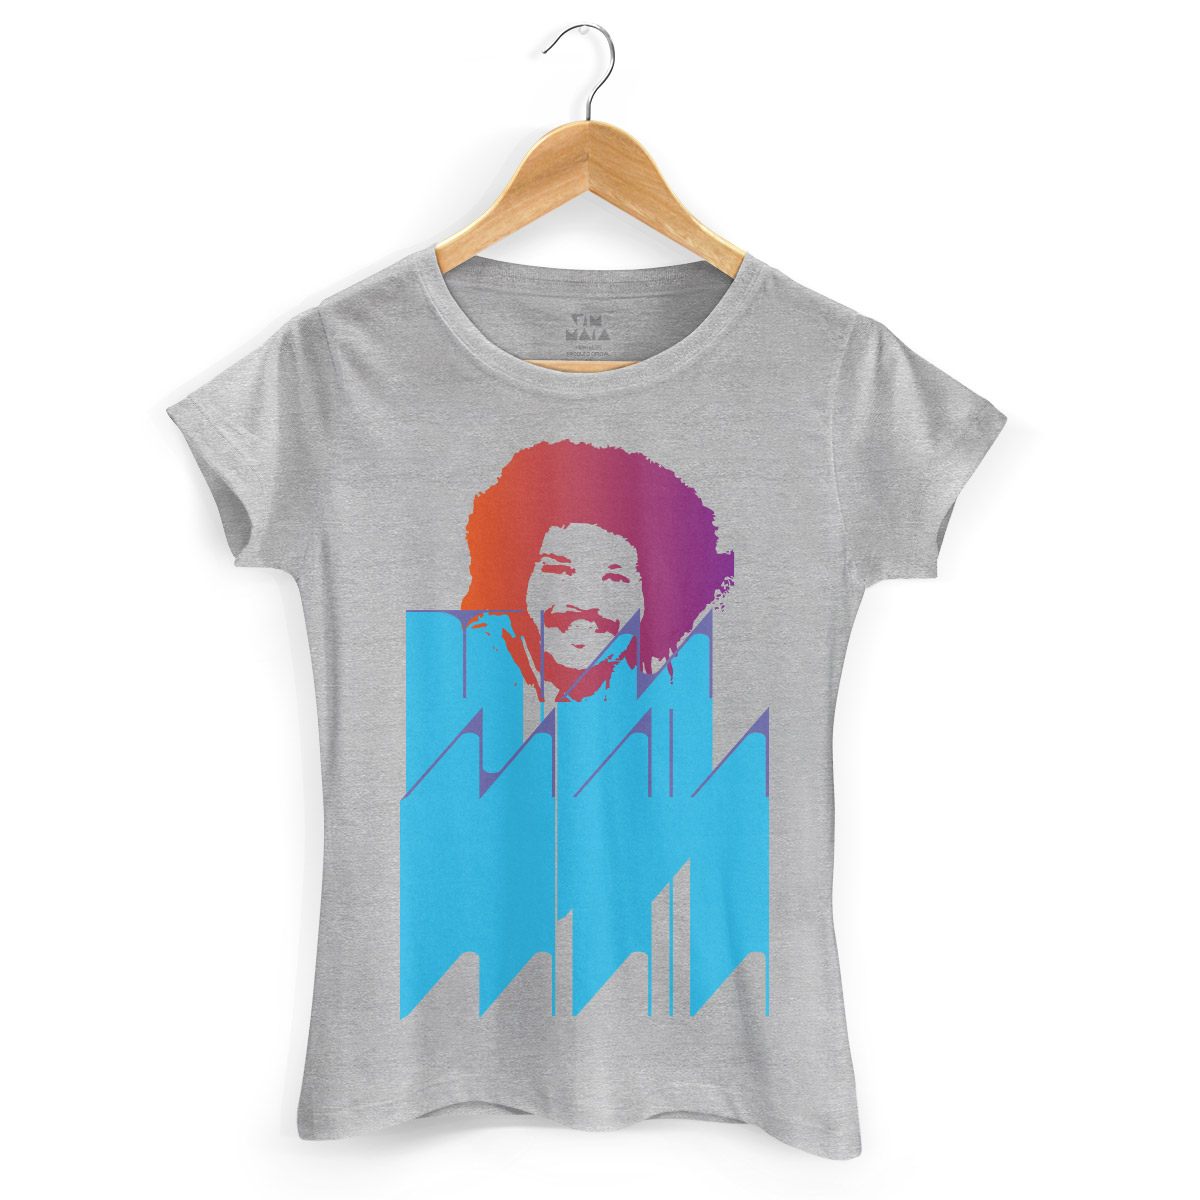 Camiseta Feminina Tim Maia Colors 2